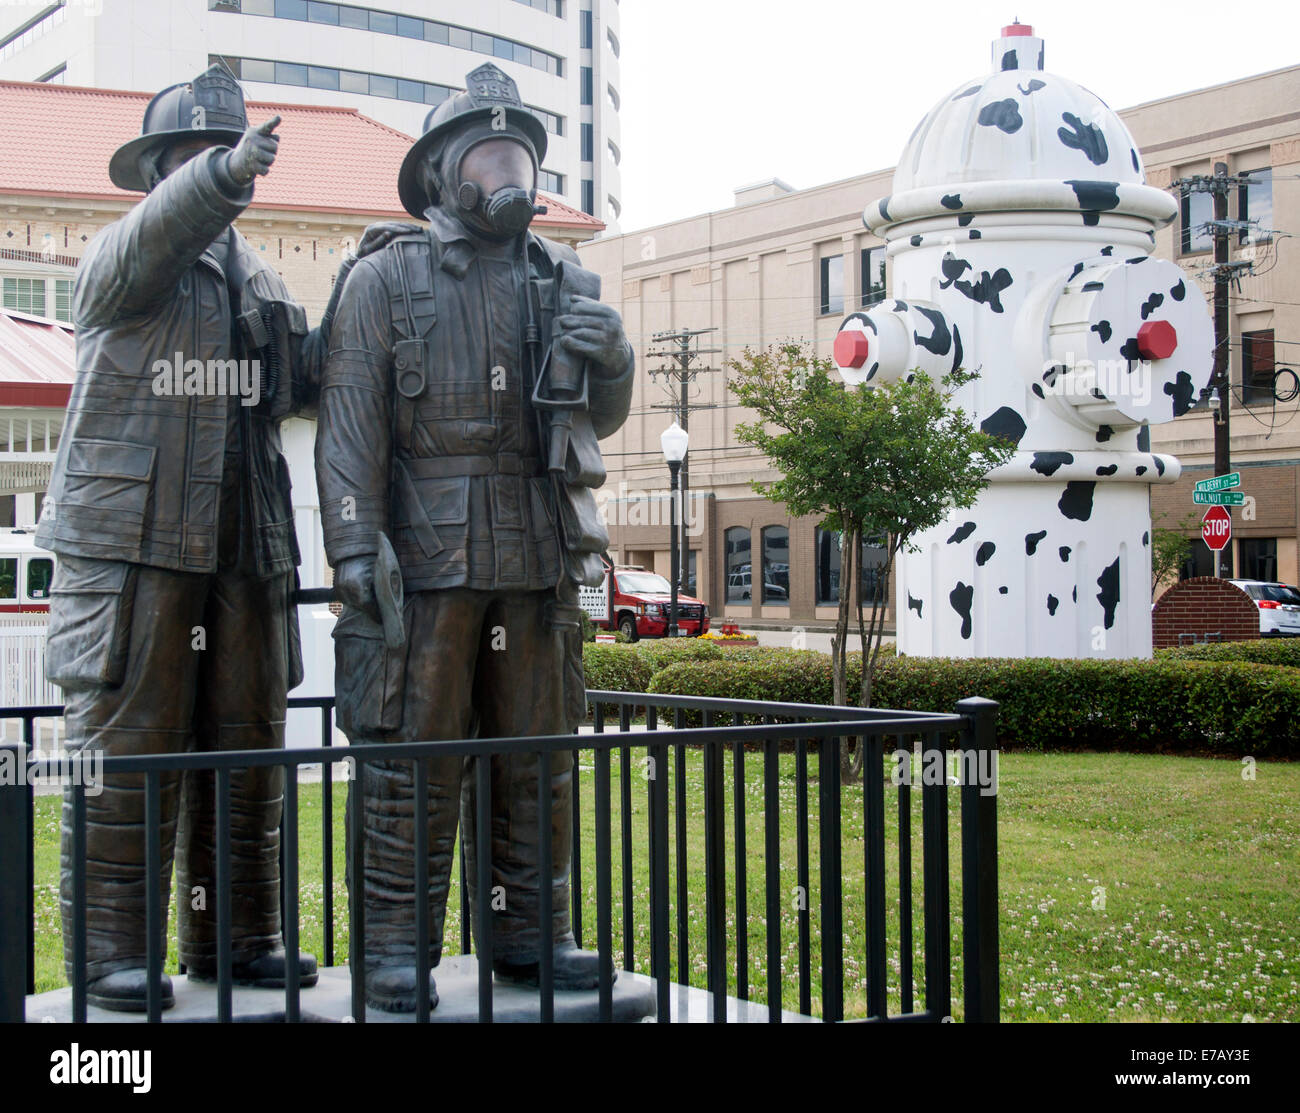 Firemen and Giant Dalmatian Fire Hydrant in Beaumont Texas - Stock Image